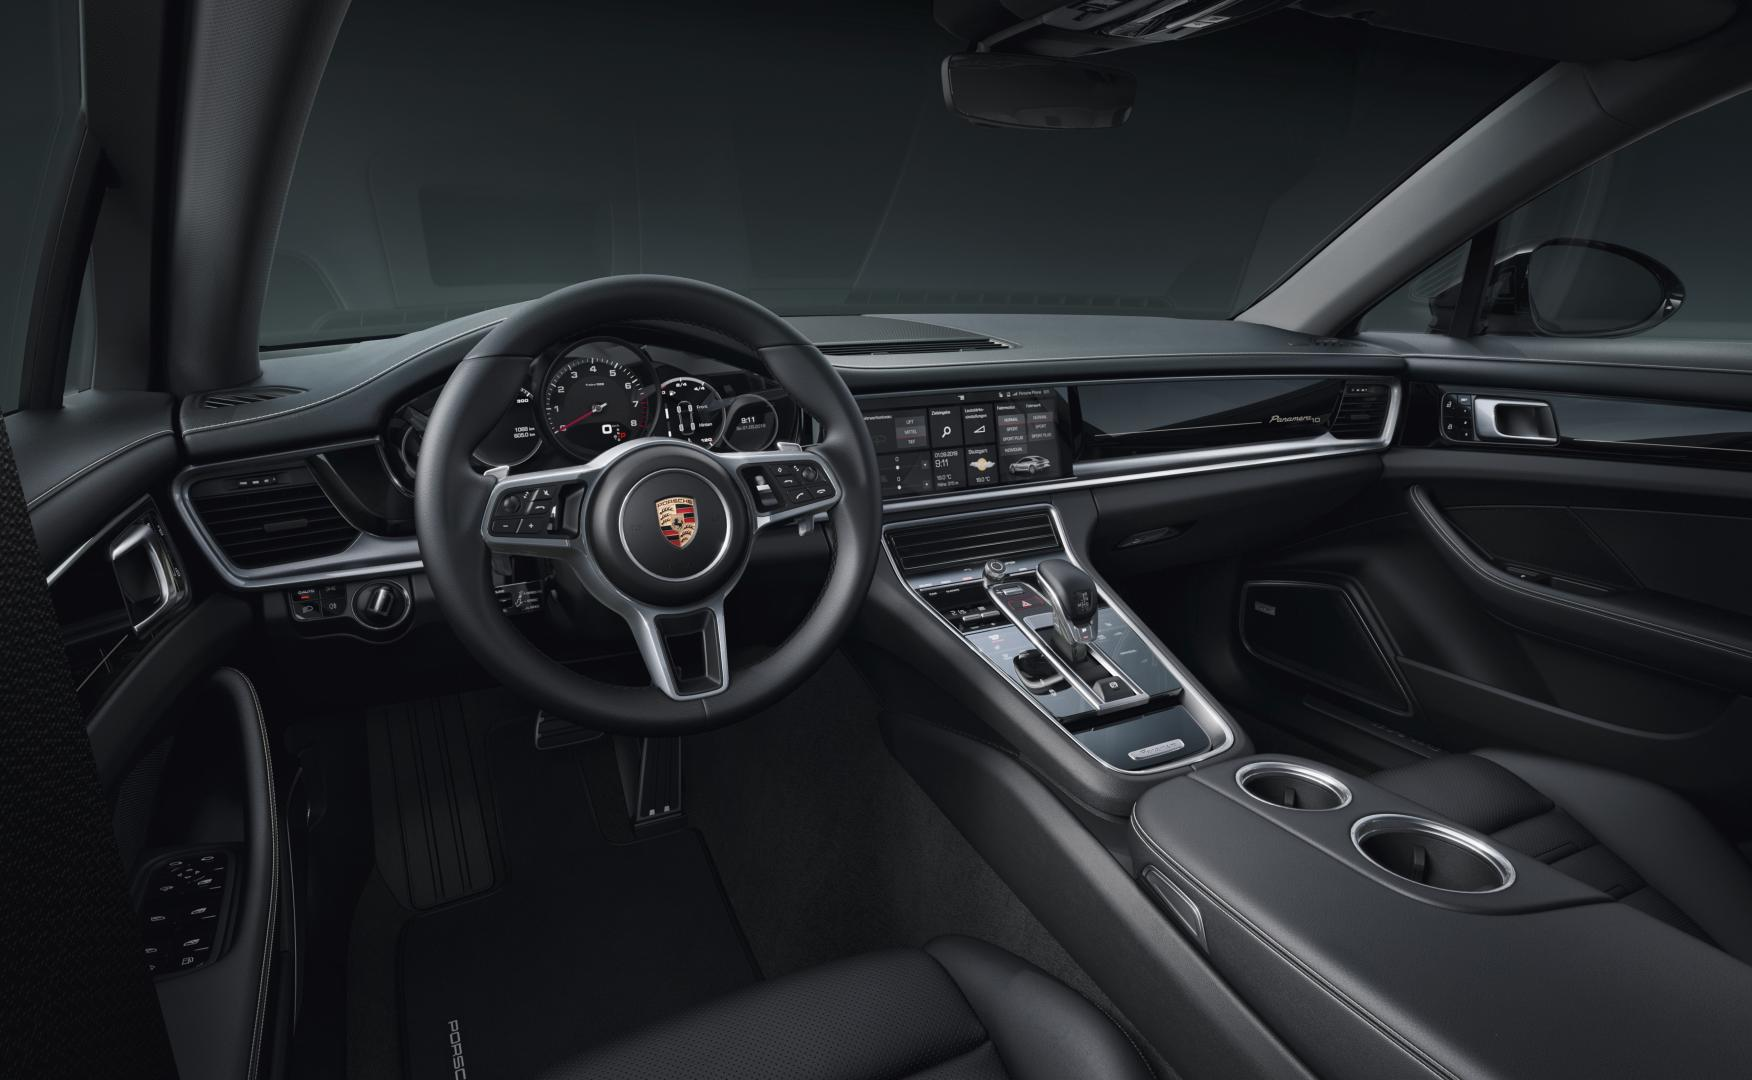 Porsche Panamera 10 Years Edition dashboard